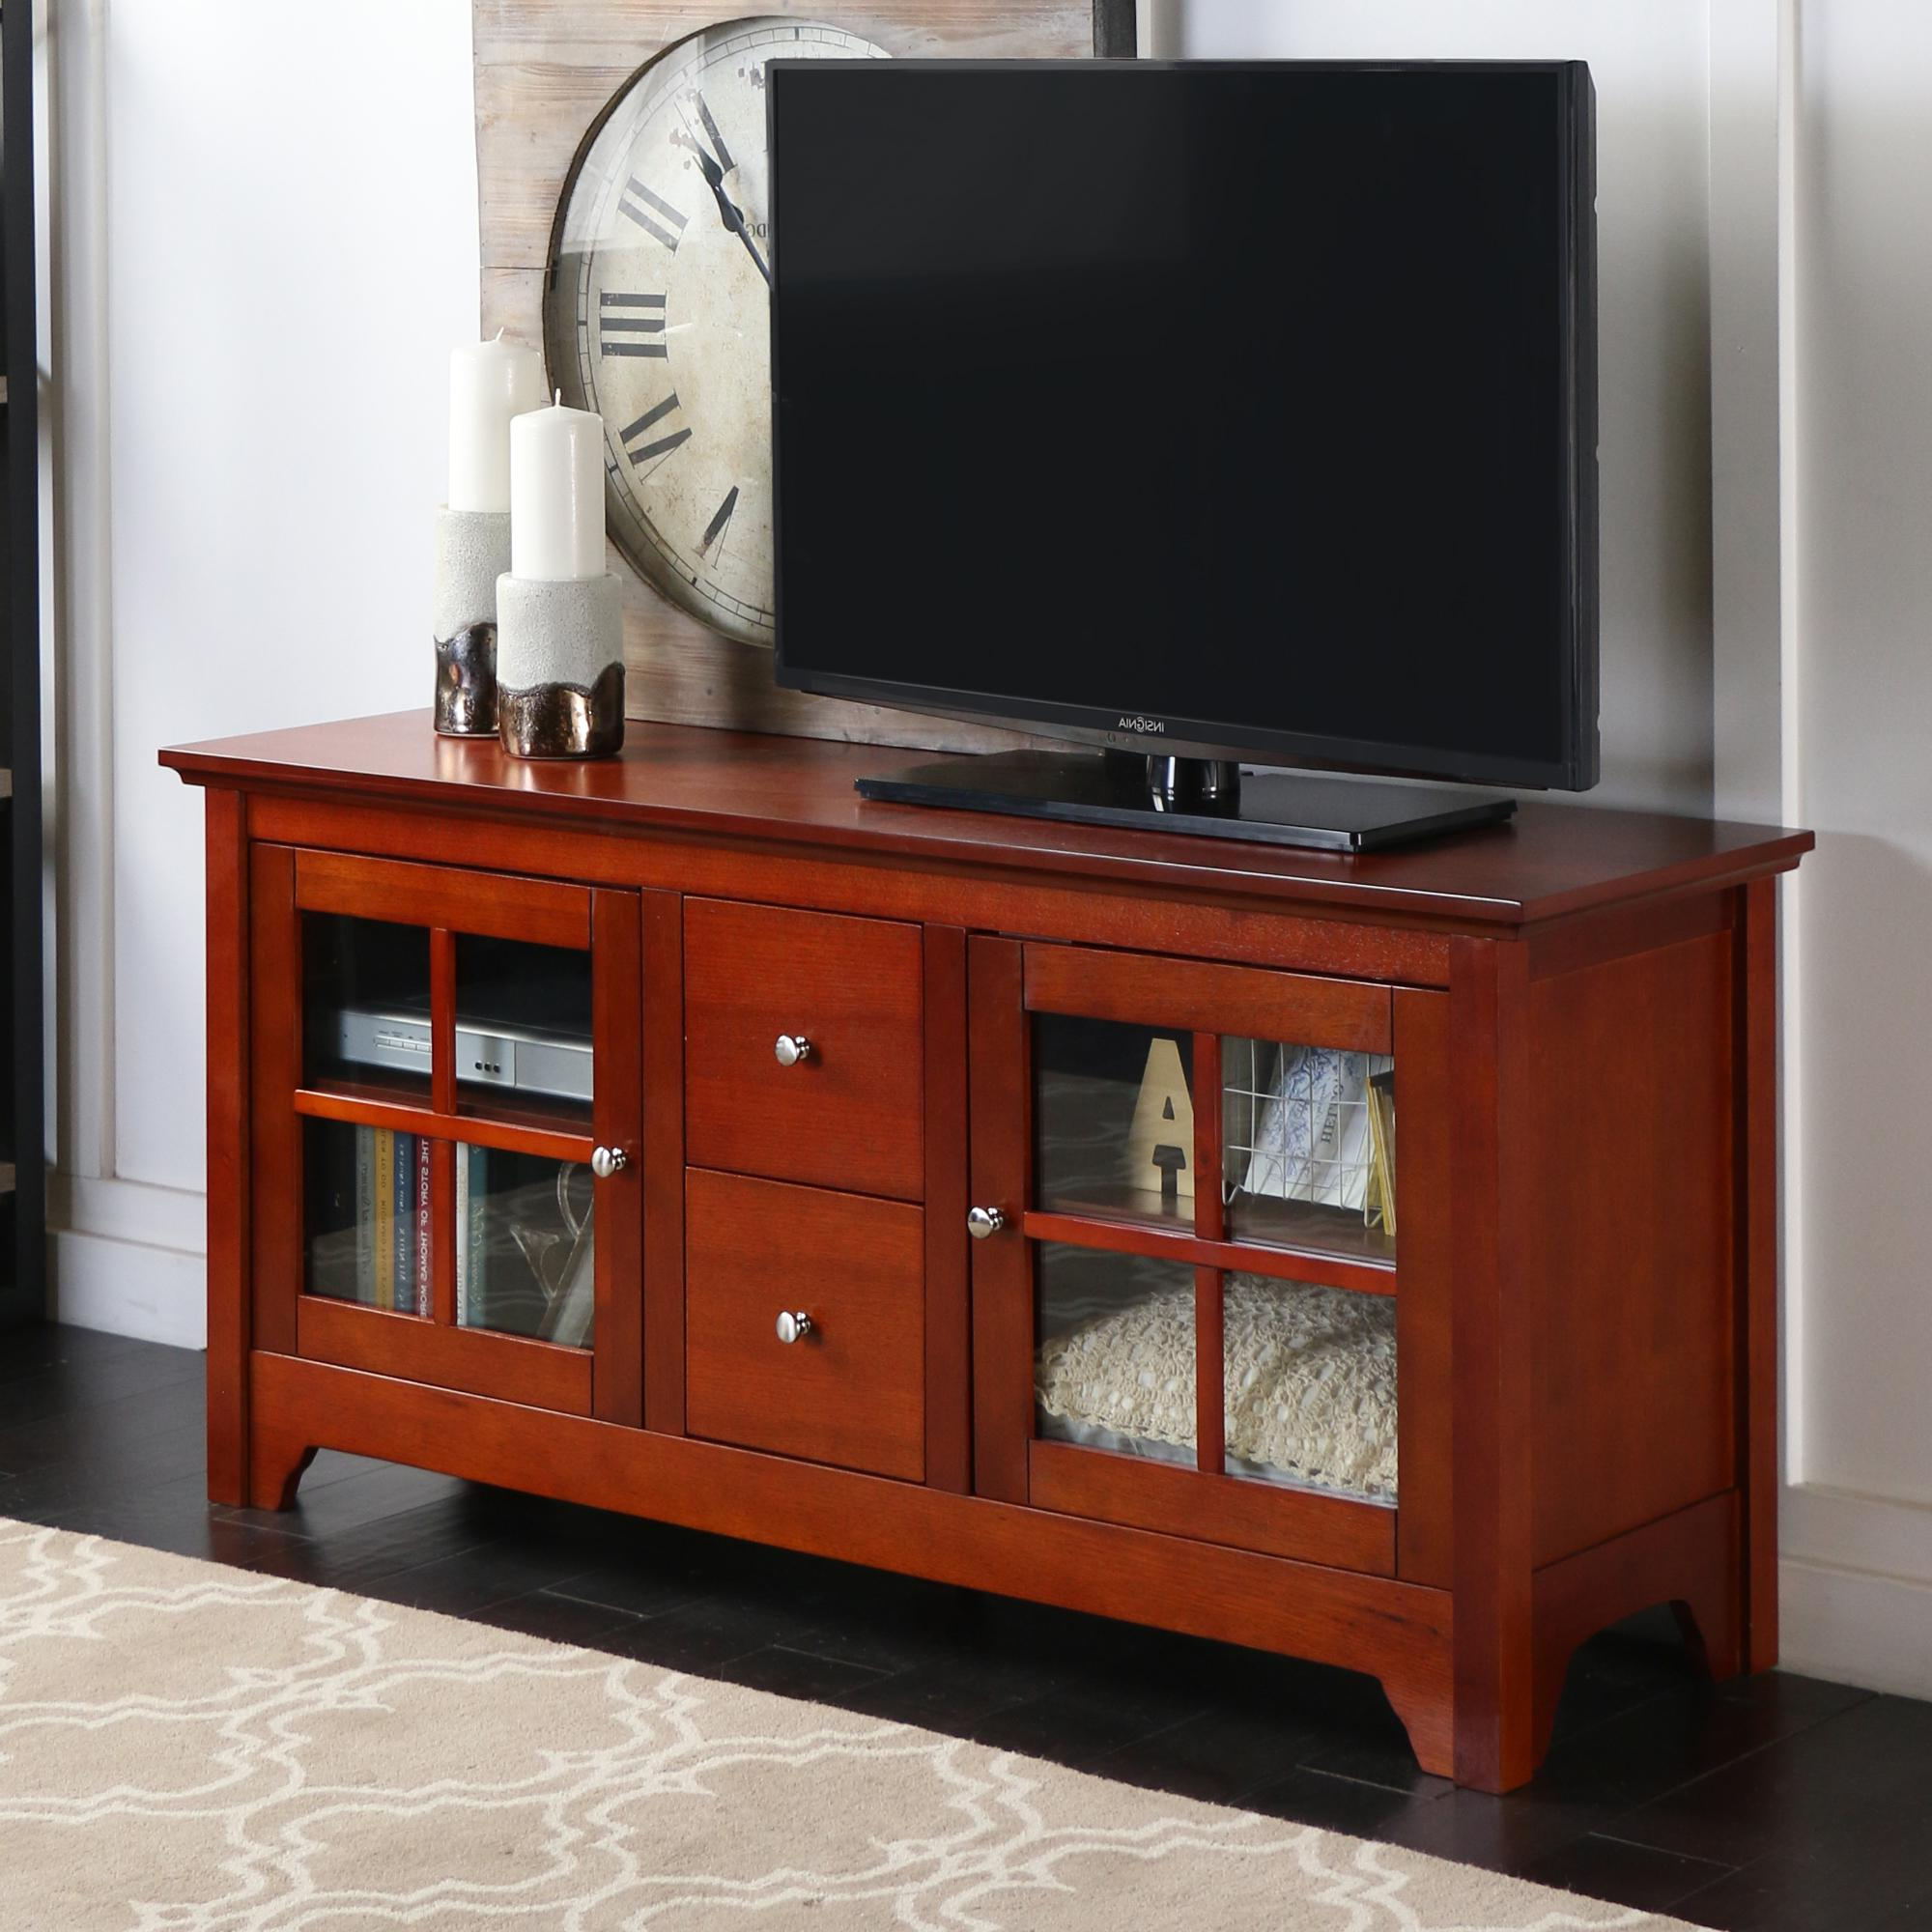 "Amazon: Walker Edison 53"" Wood Tv Stand Console With Storage Intended For Most Recent Storage Tv Stands (View 3 of 20)"